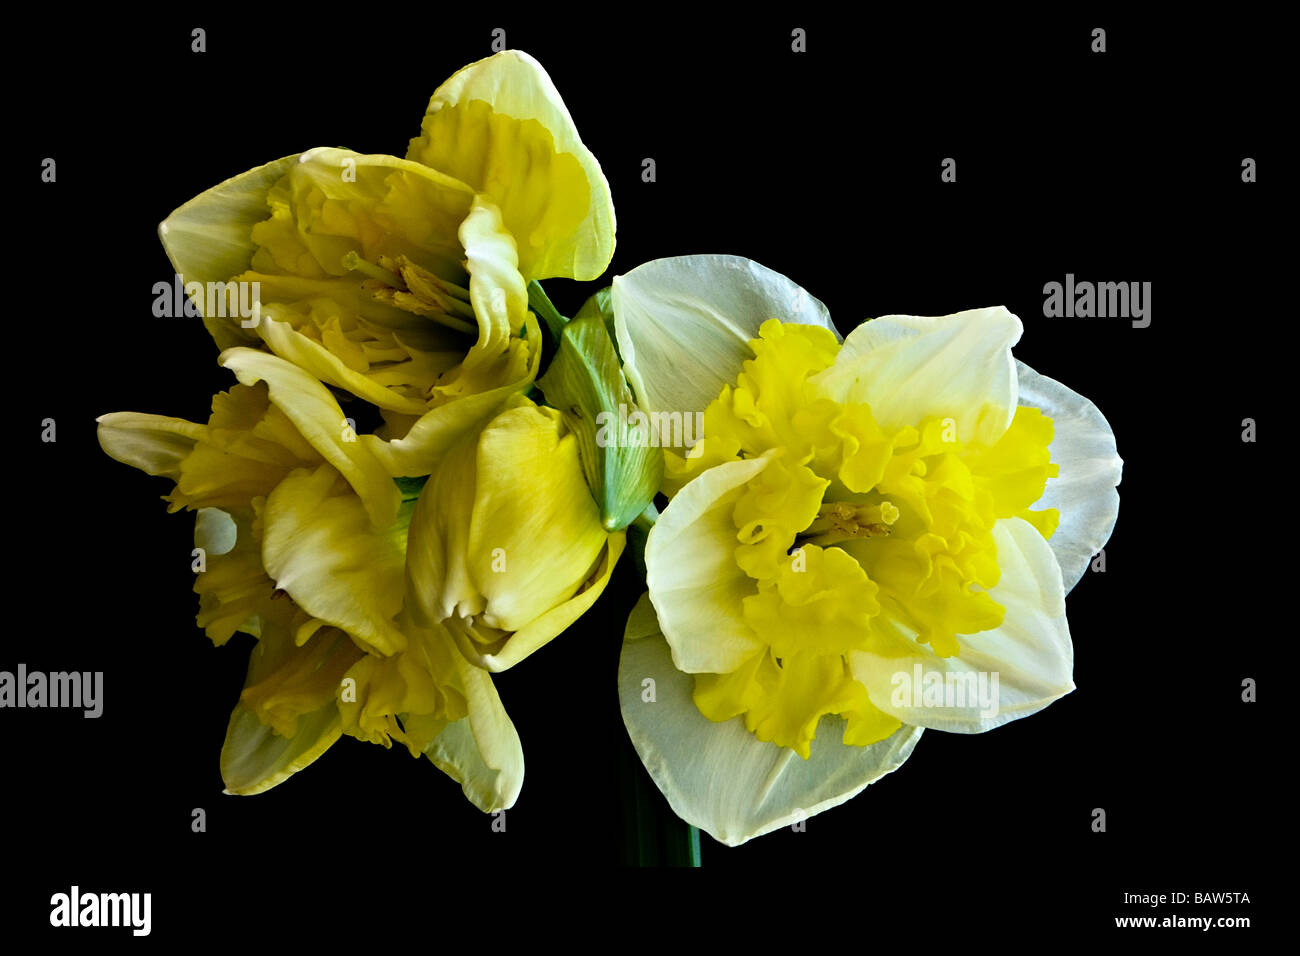 Yellow and White Jonquil Flowers on a Black Background - Stock Image